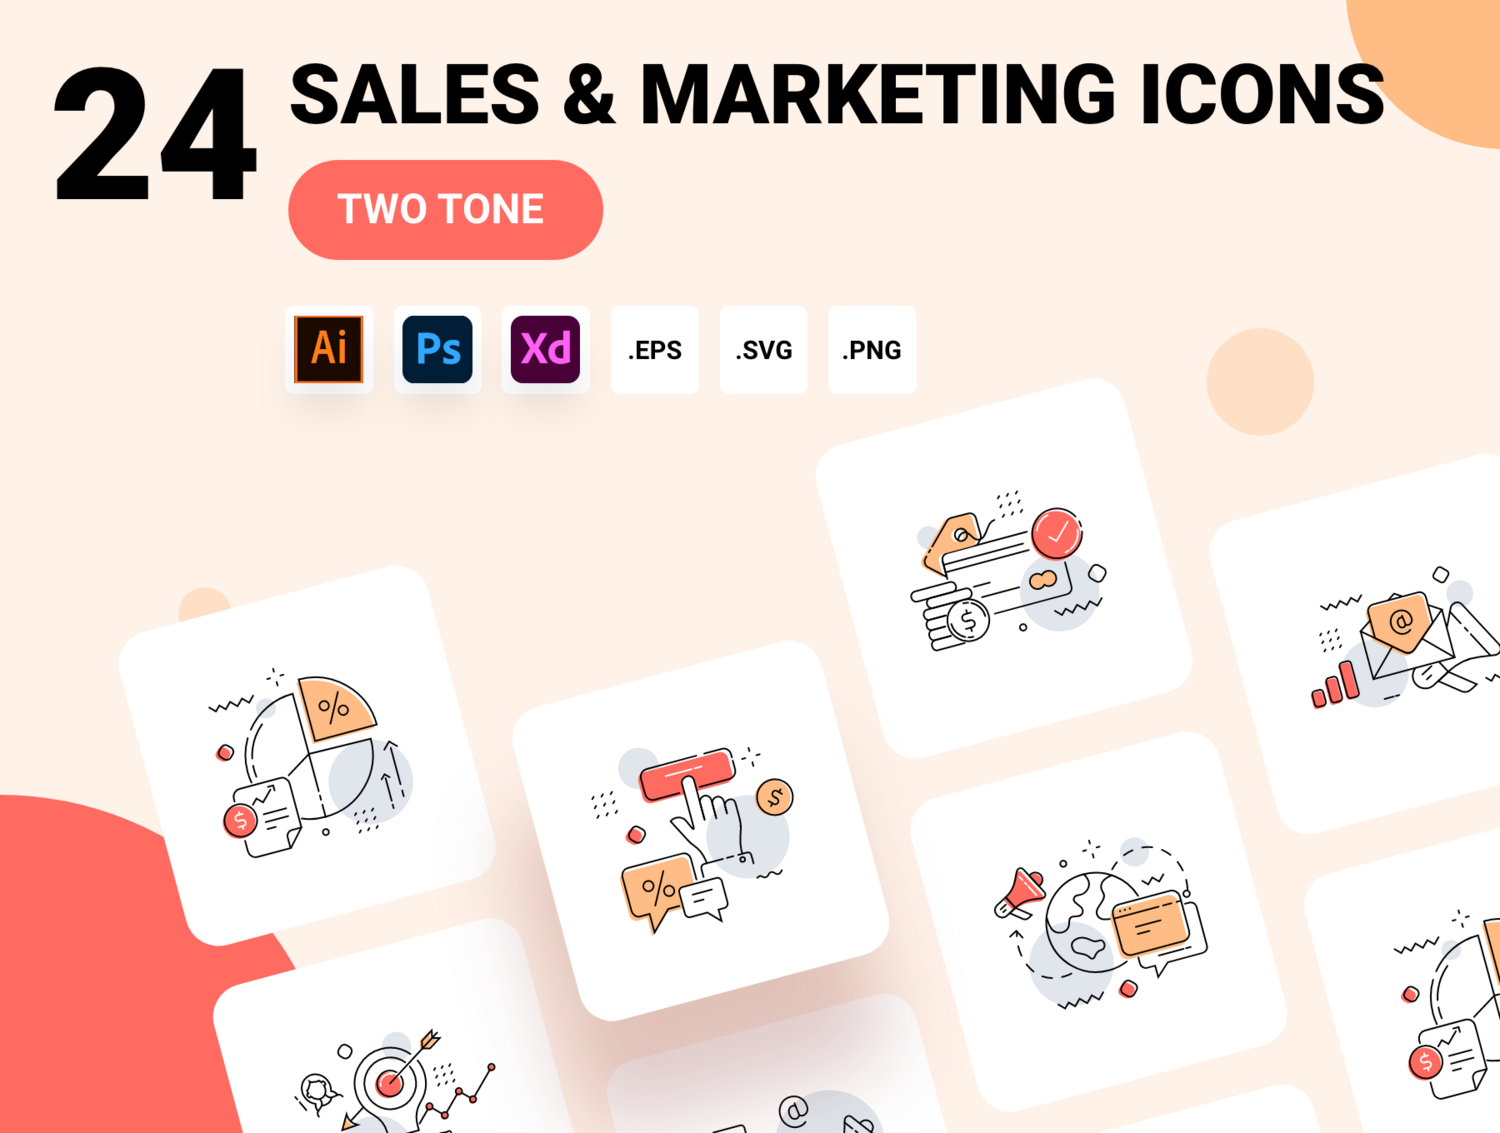 Sales and Marketing icon pack